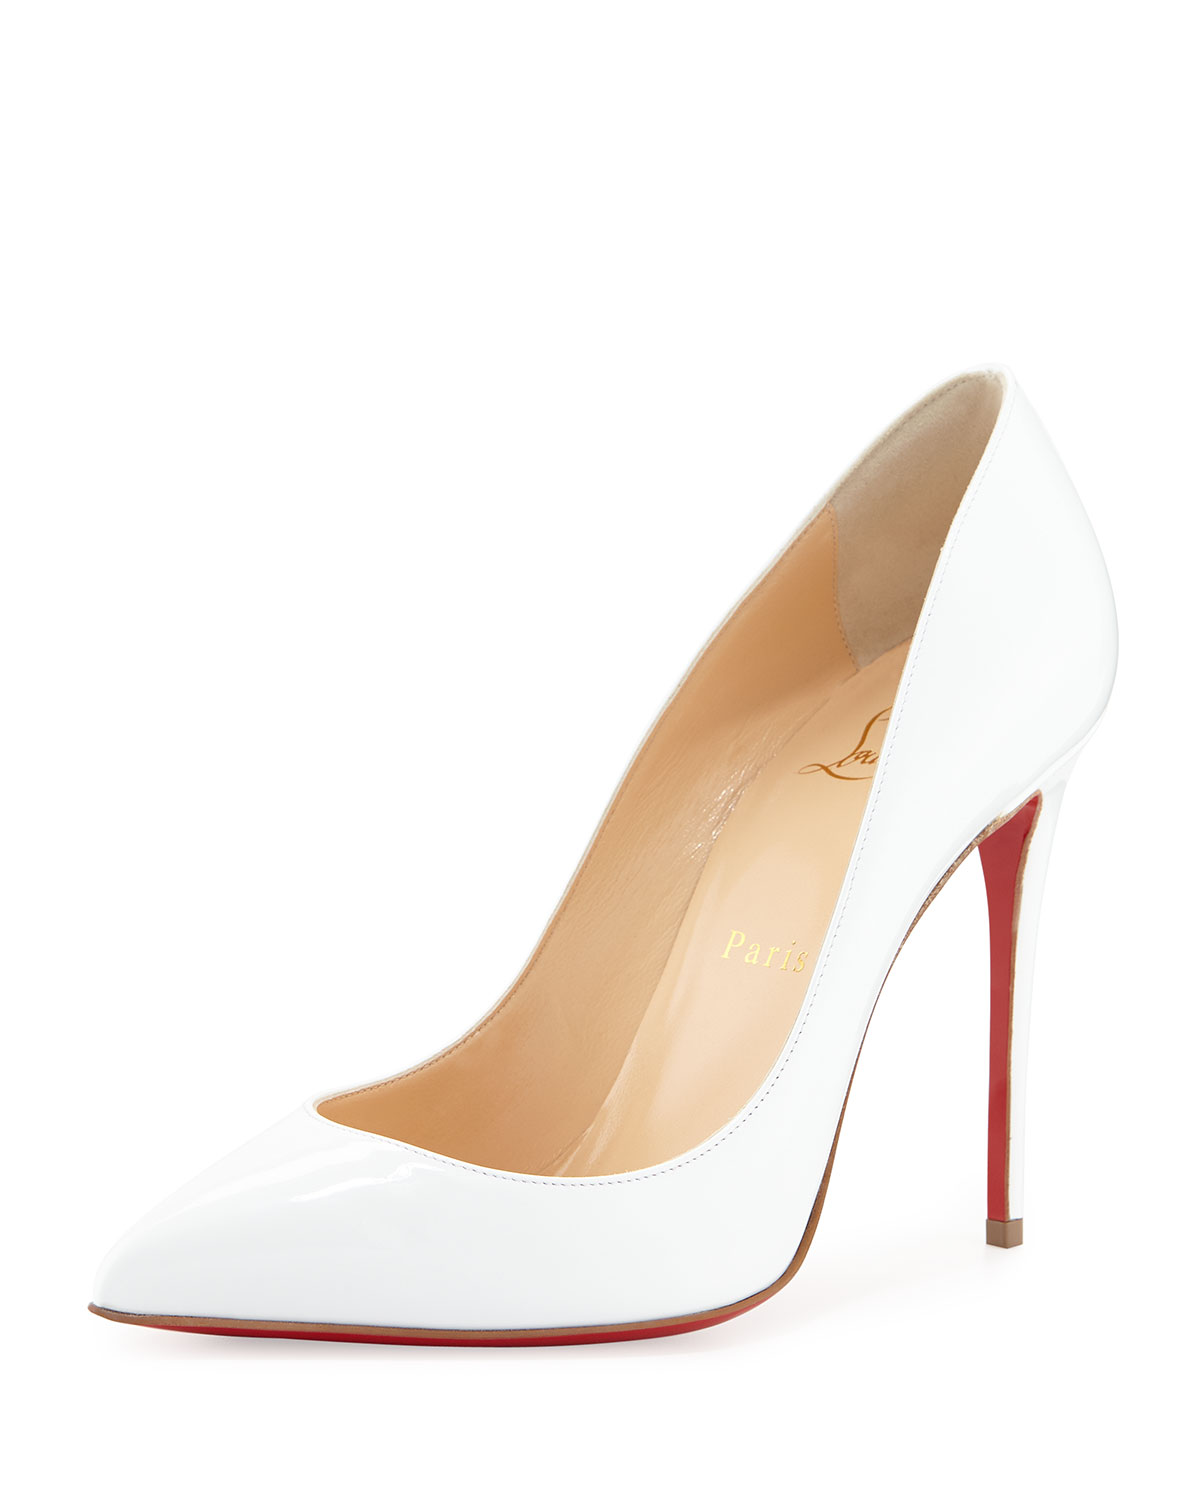 Christian Louboutin Pigalle Follies Point-Toe Red Sole Pump, White, Women's, Size: 39.0B/9.0B